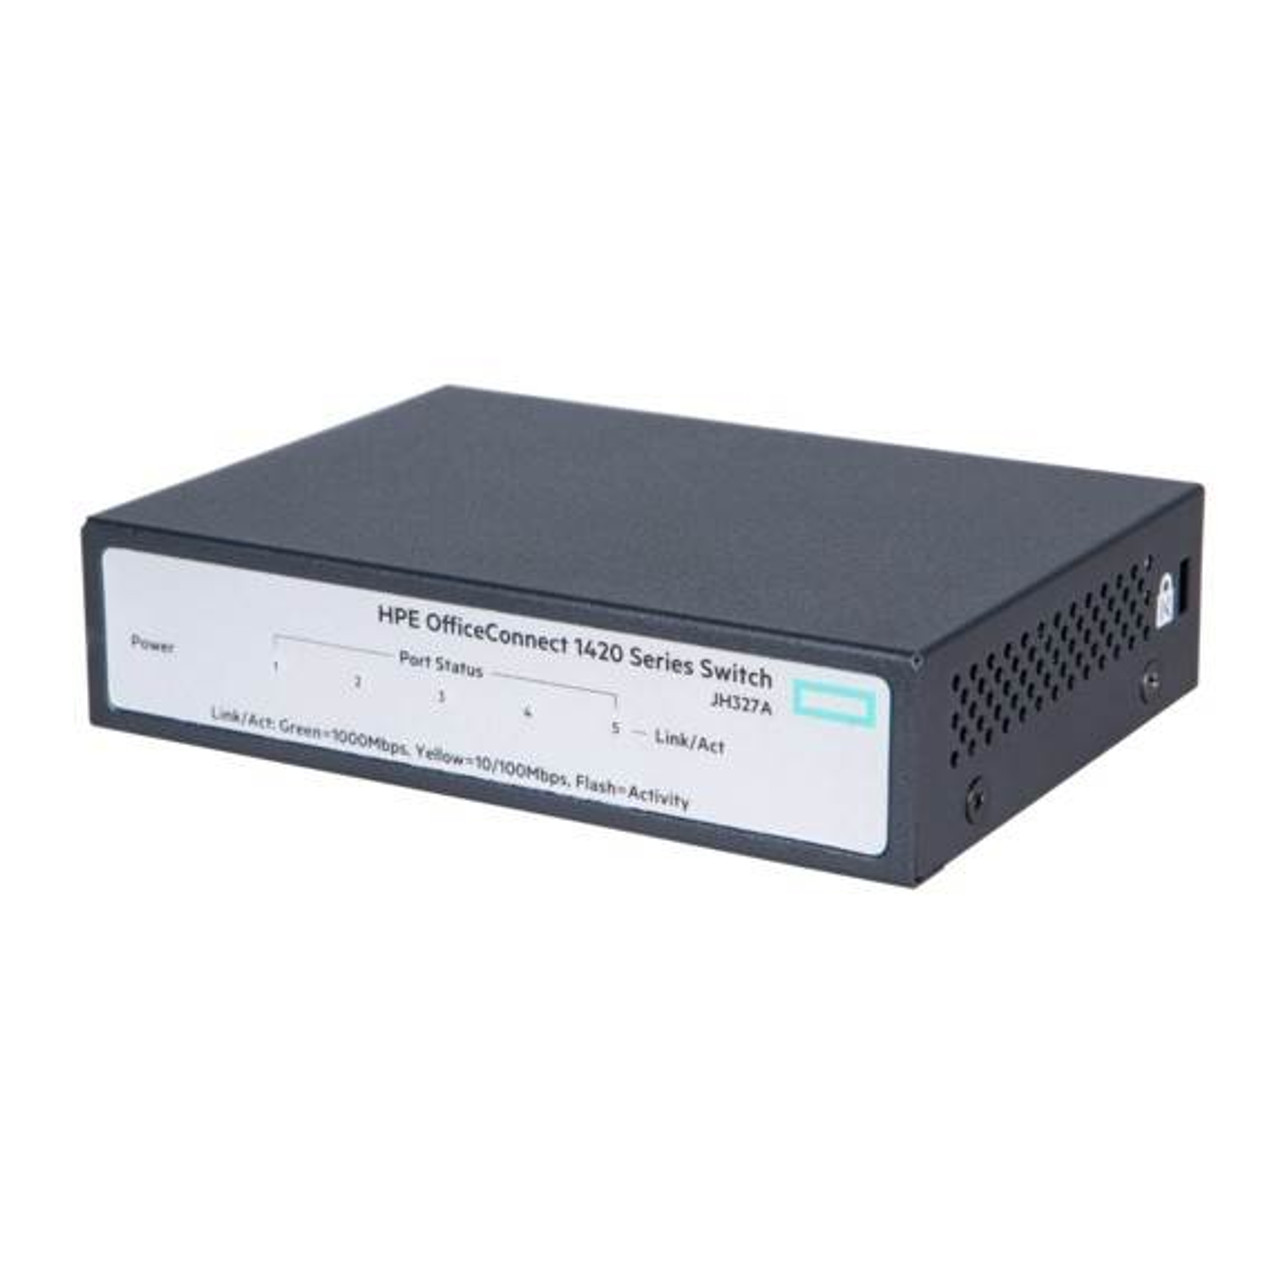 Image for HPE OfficeConnect 1420 Gigabit 5 Port Unmanaged Switch CX Computer Superstore